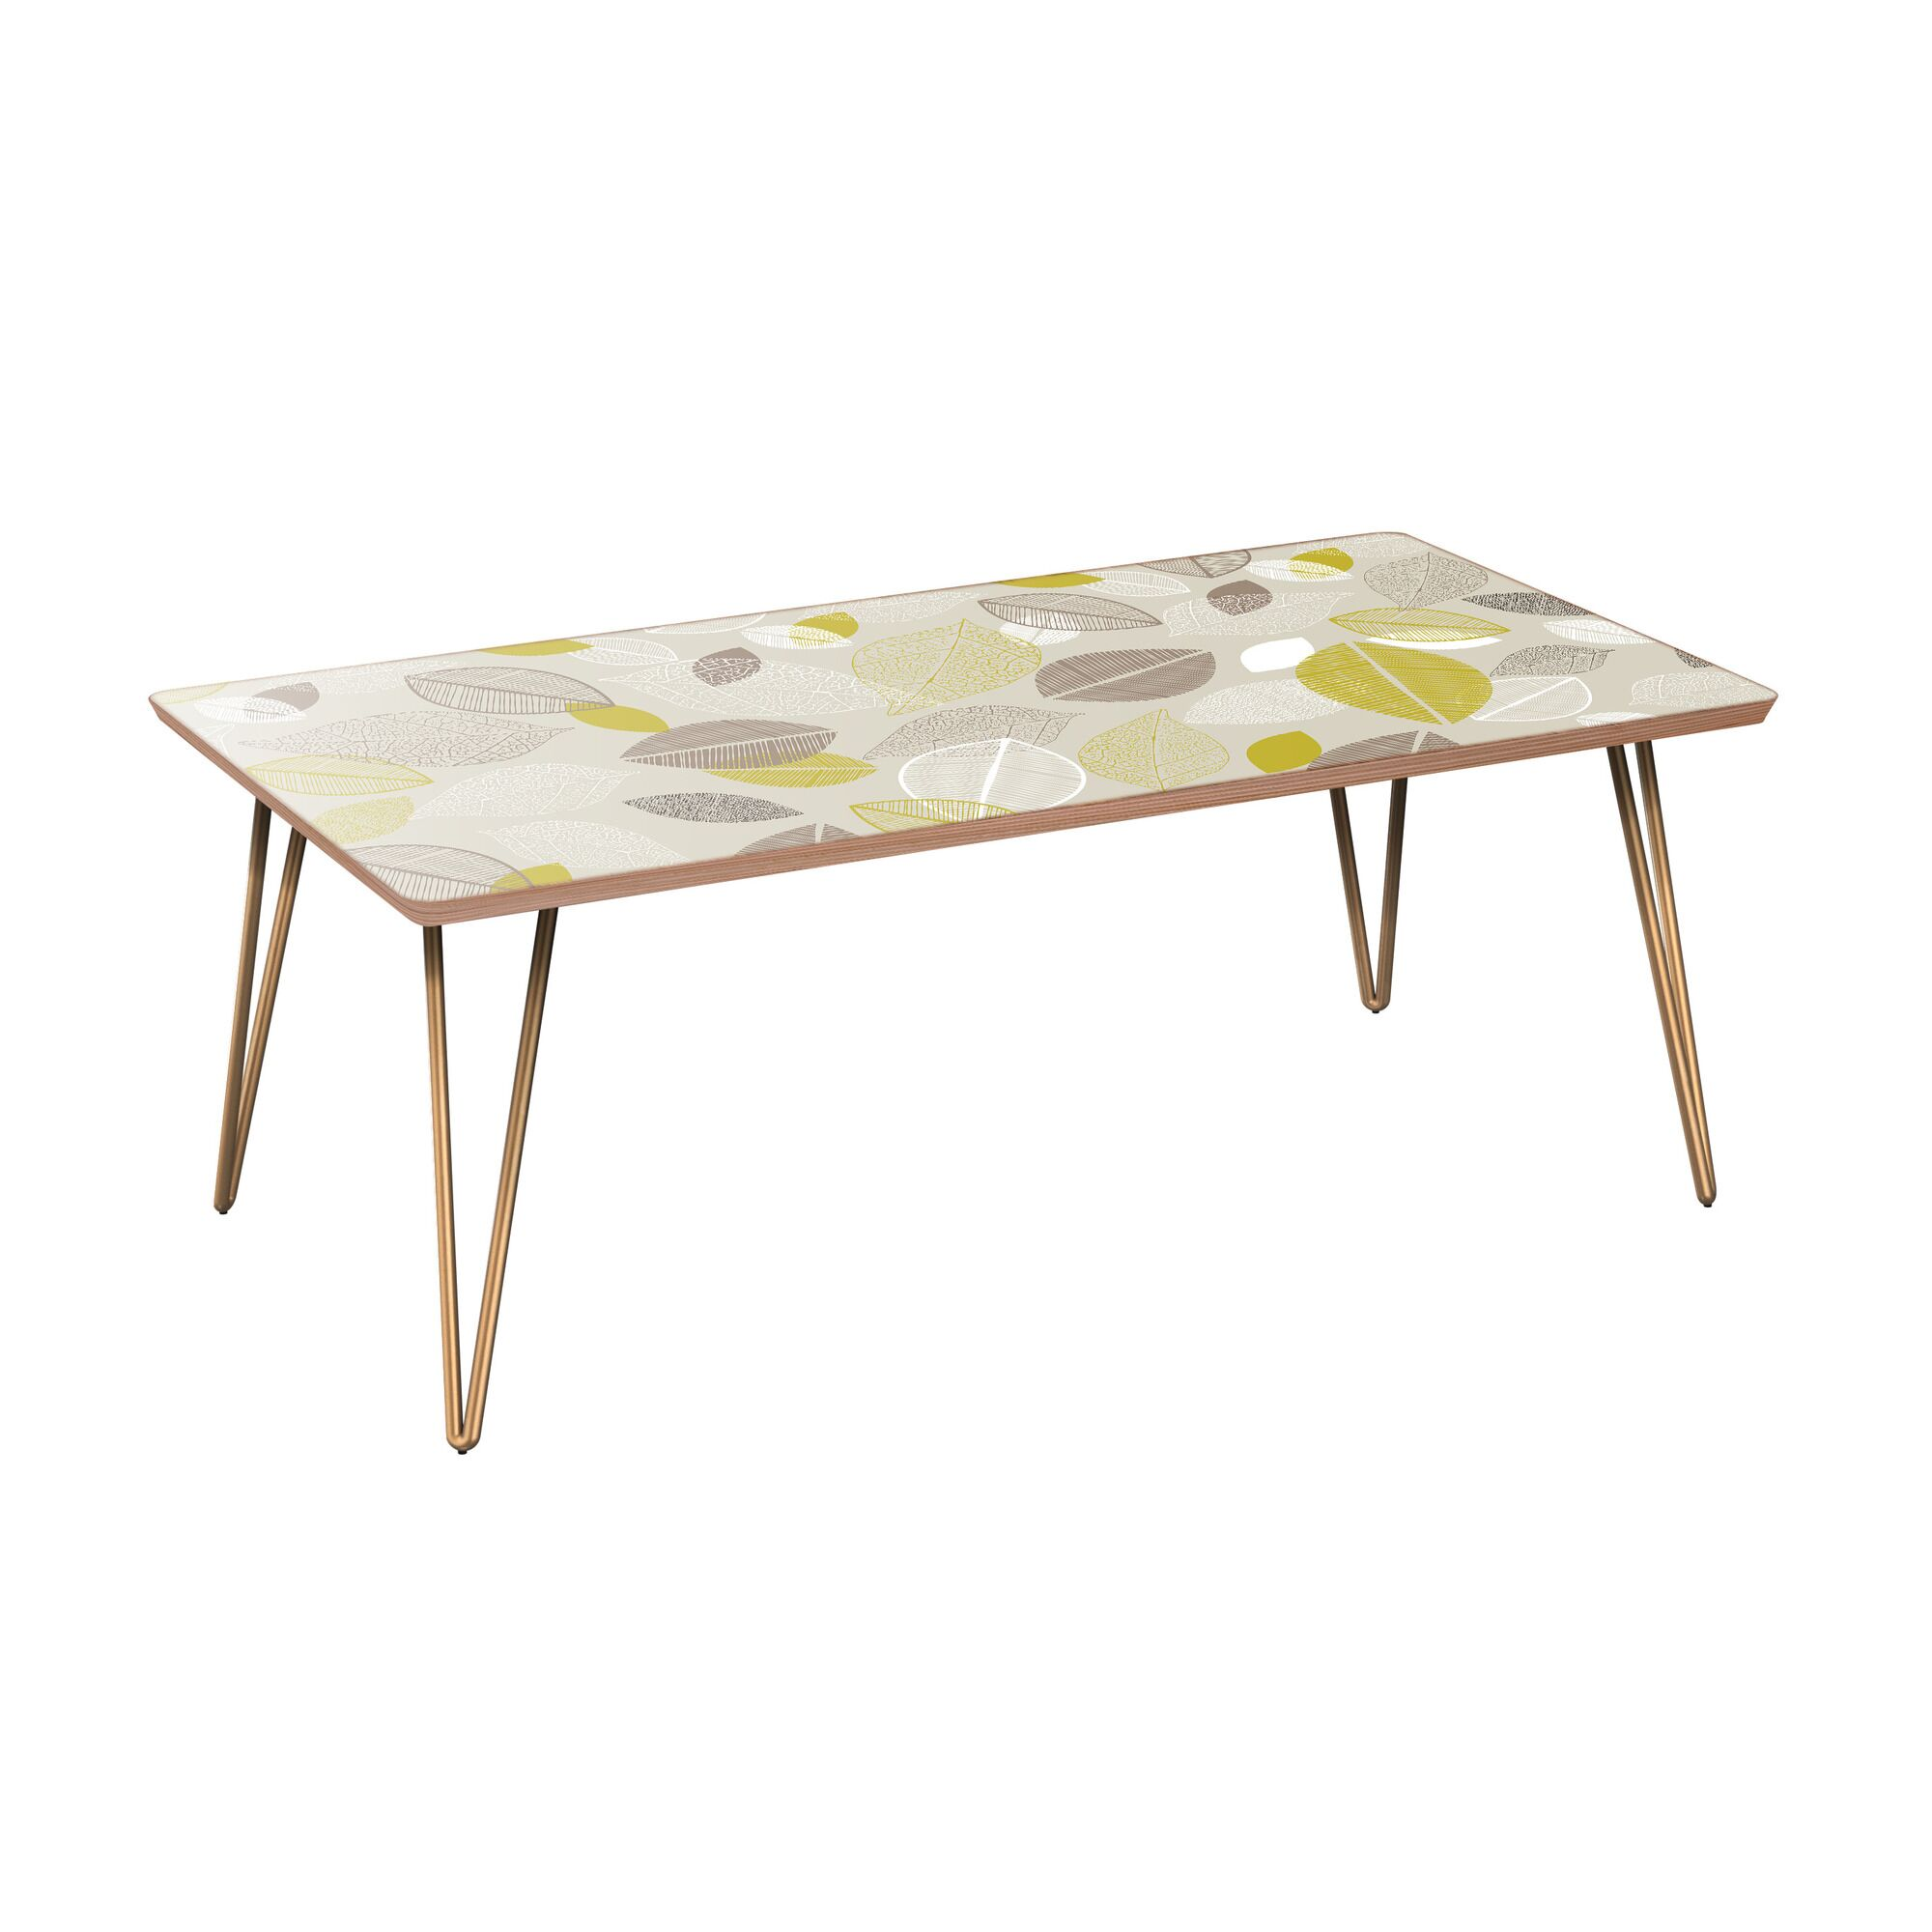 Richarson Coffee Table Table Base Color: Brass, Table Top Boarder Color: Walnut, Table Top Color: Blue